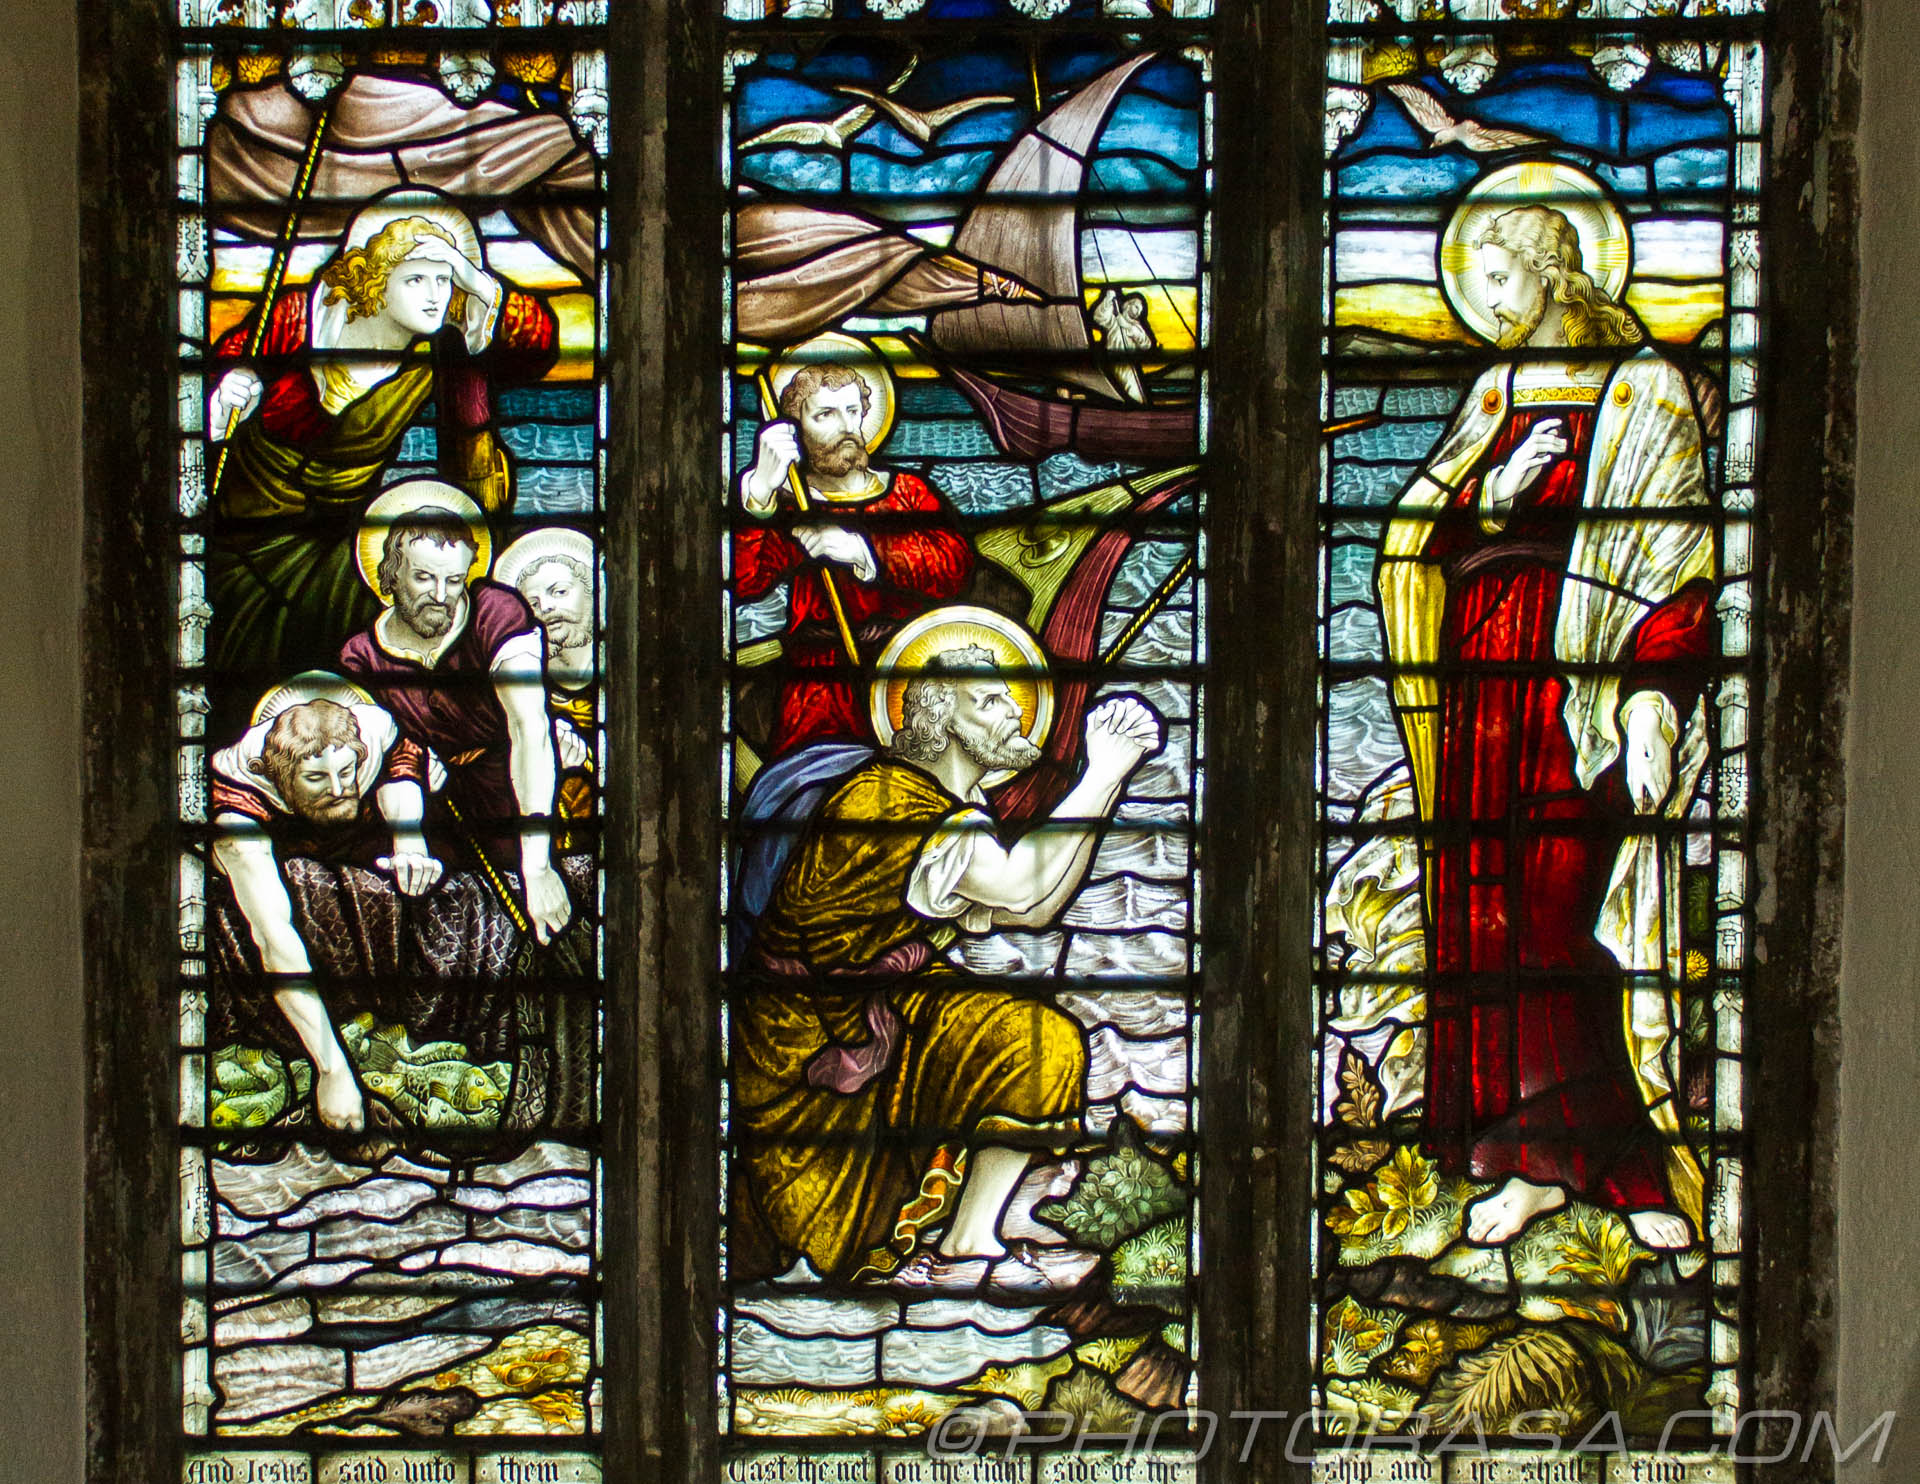 http://photorasa.com/parish-church-st-peter-st-paul-headcorn/north-stained-glass-window-detail-showing-fishermen-begging-jesus-for-help/